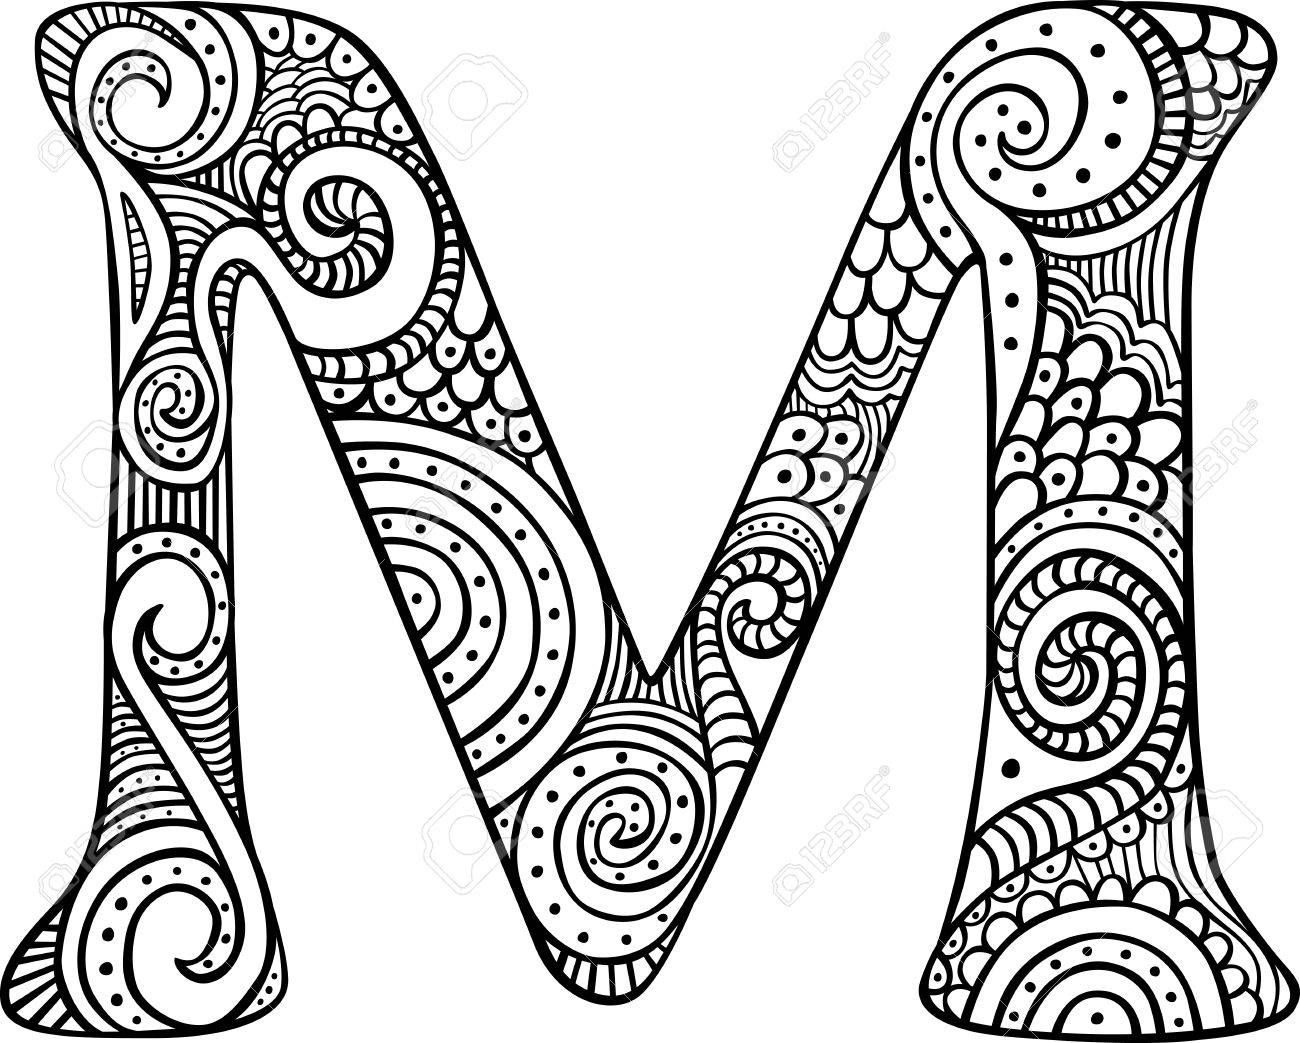 Hand drawn capital letter m in black coloring sheet for adults stock vector 84934262